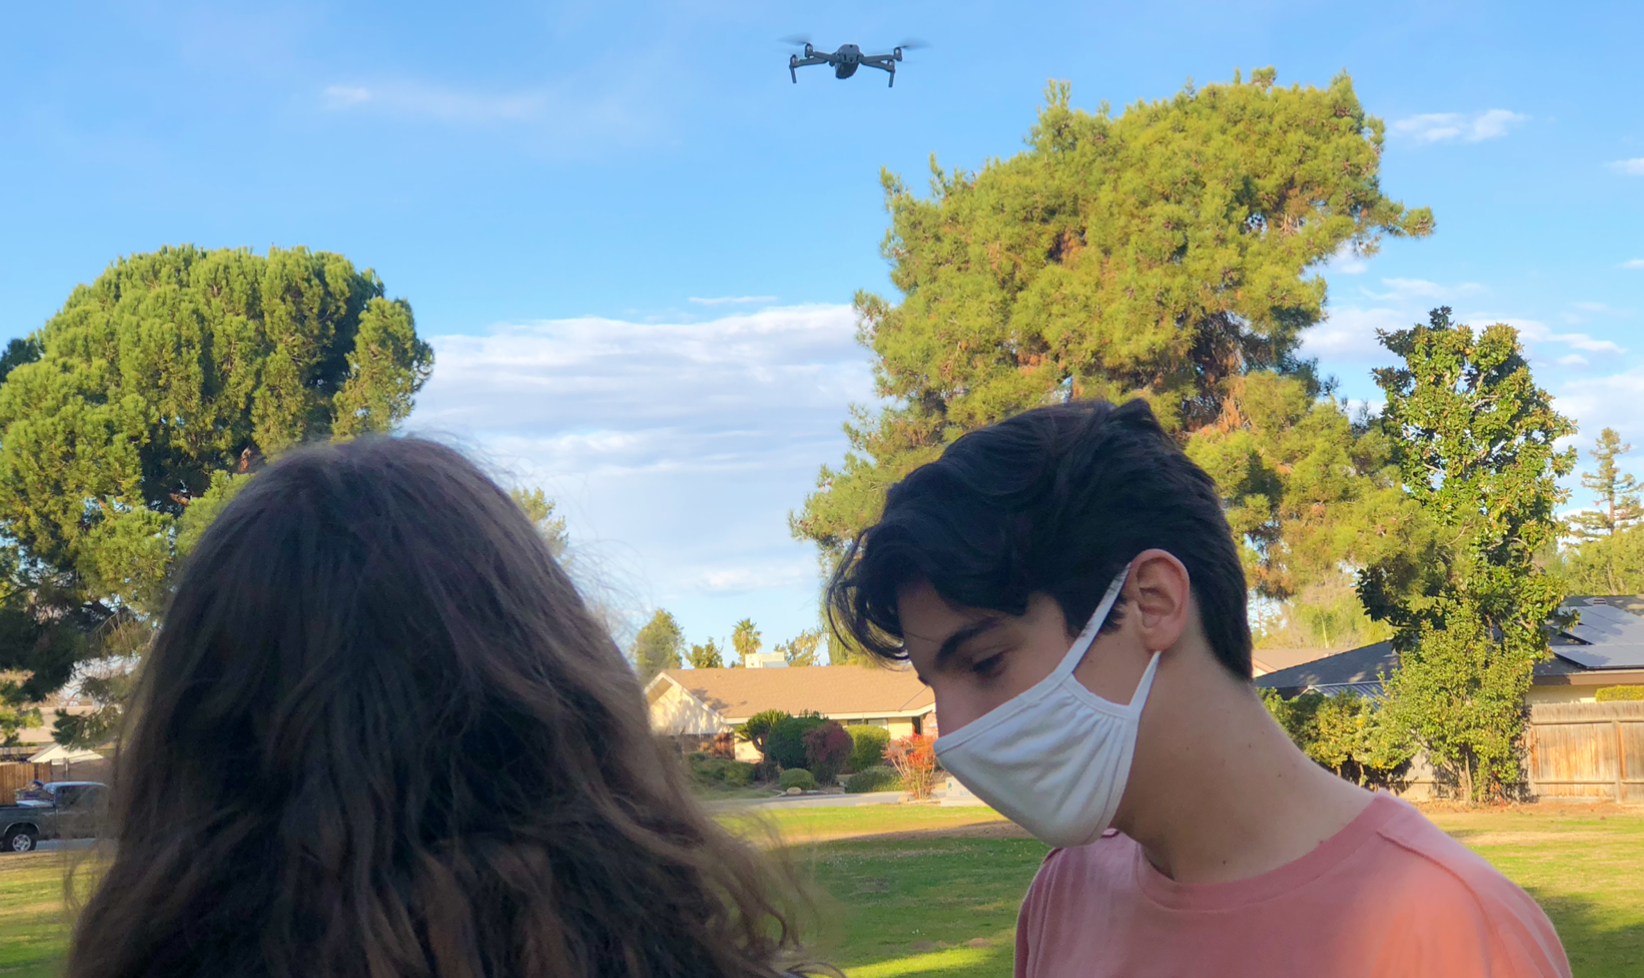 Mac with Drone